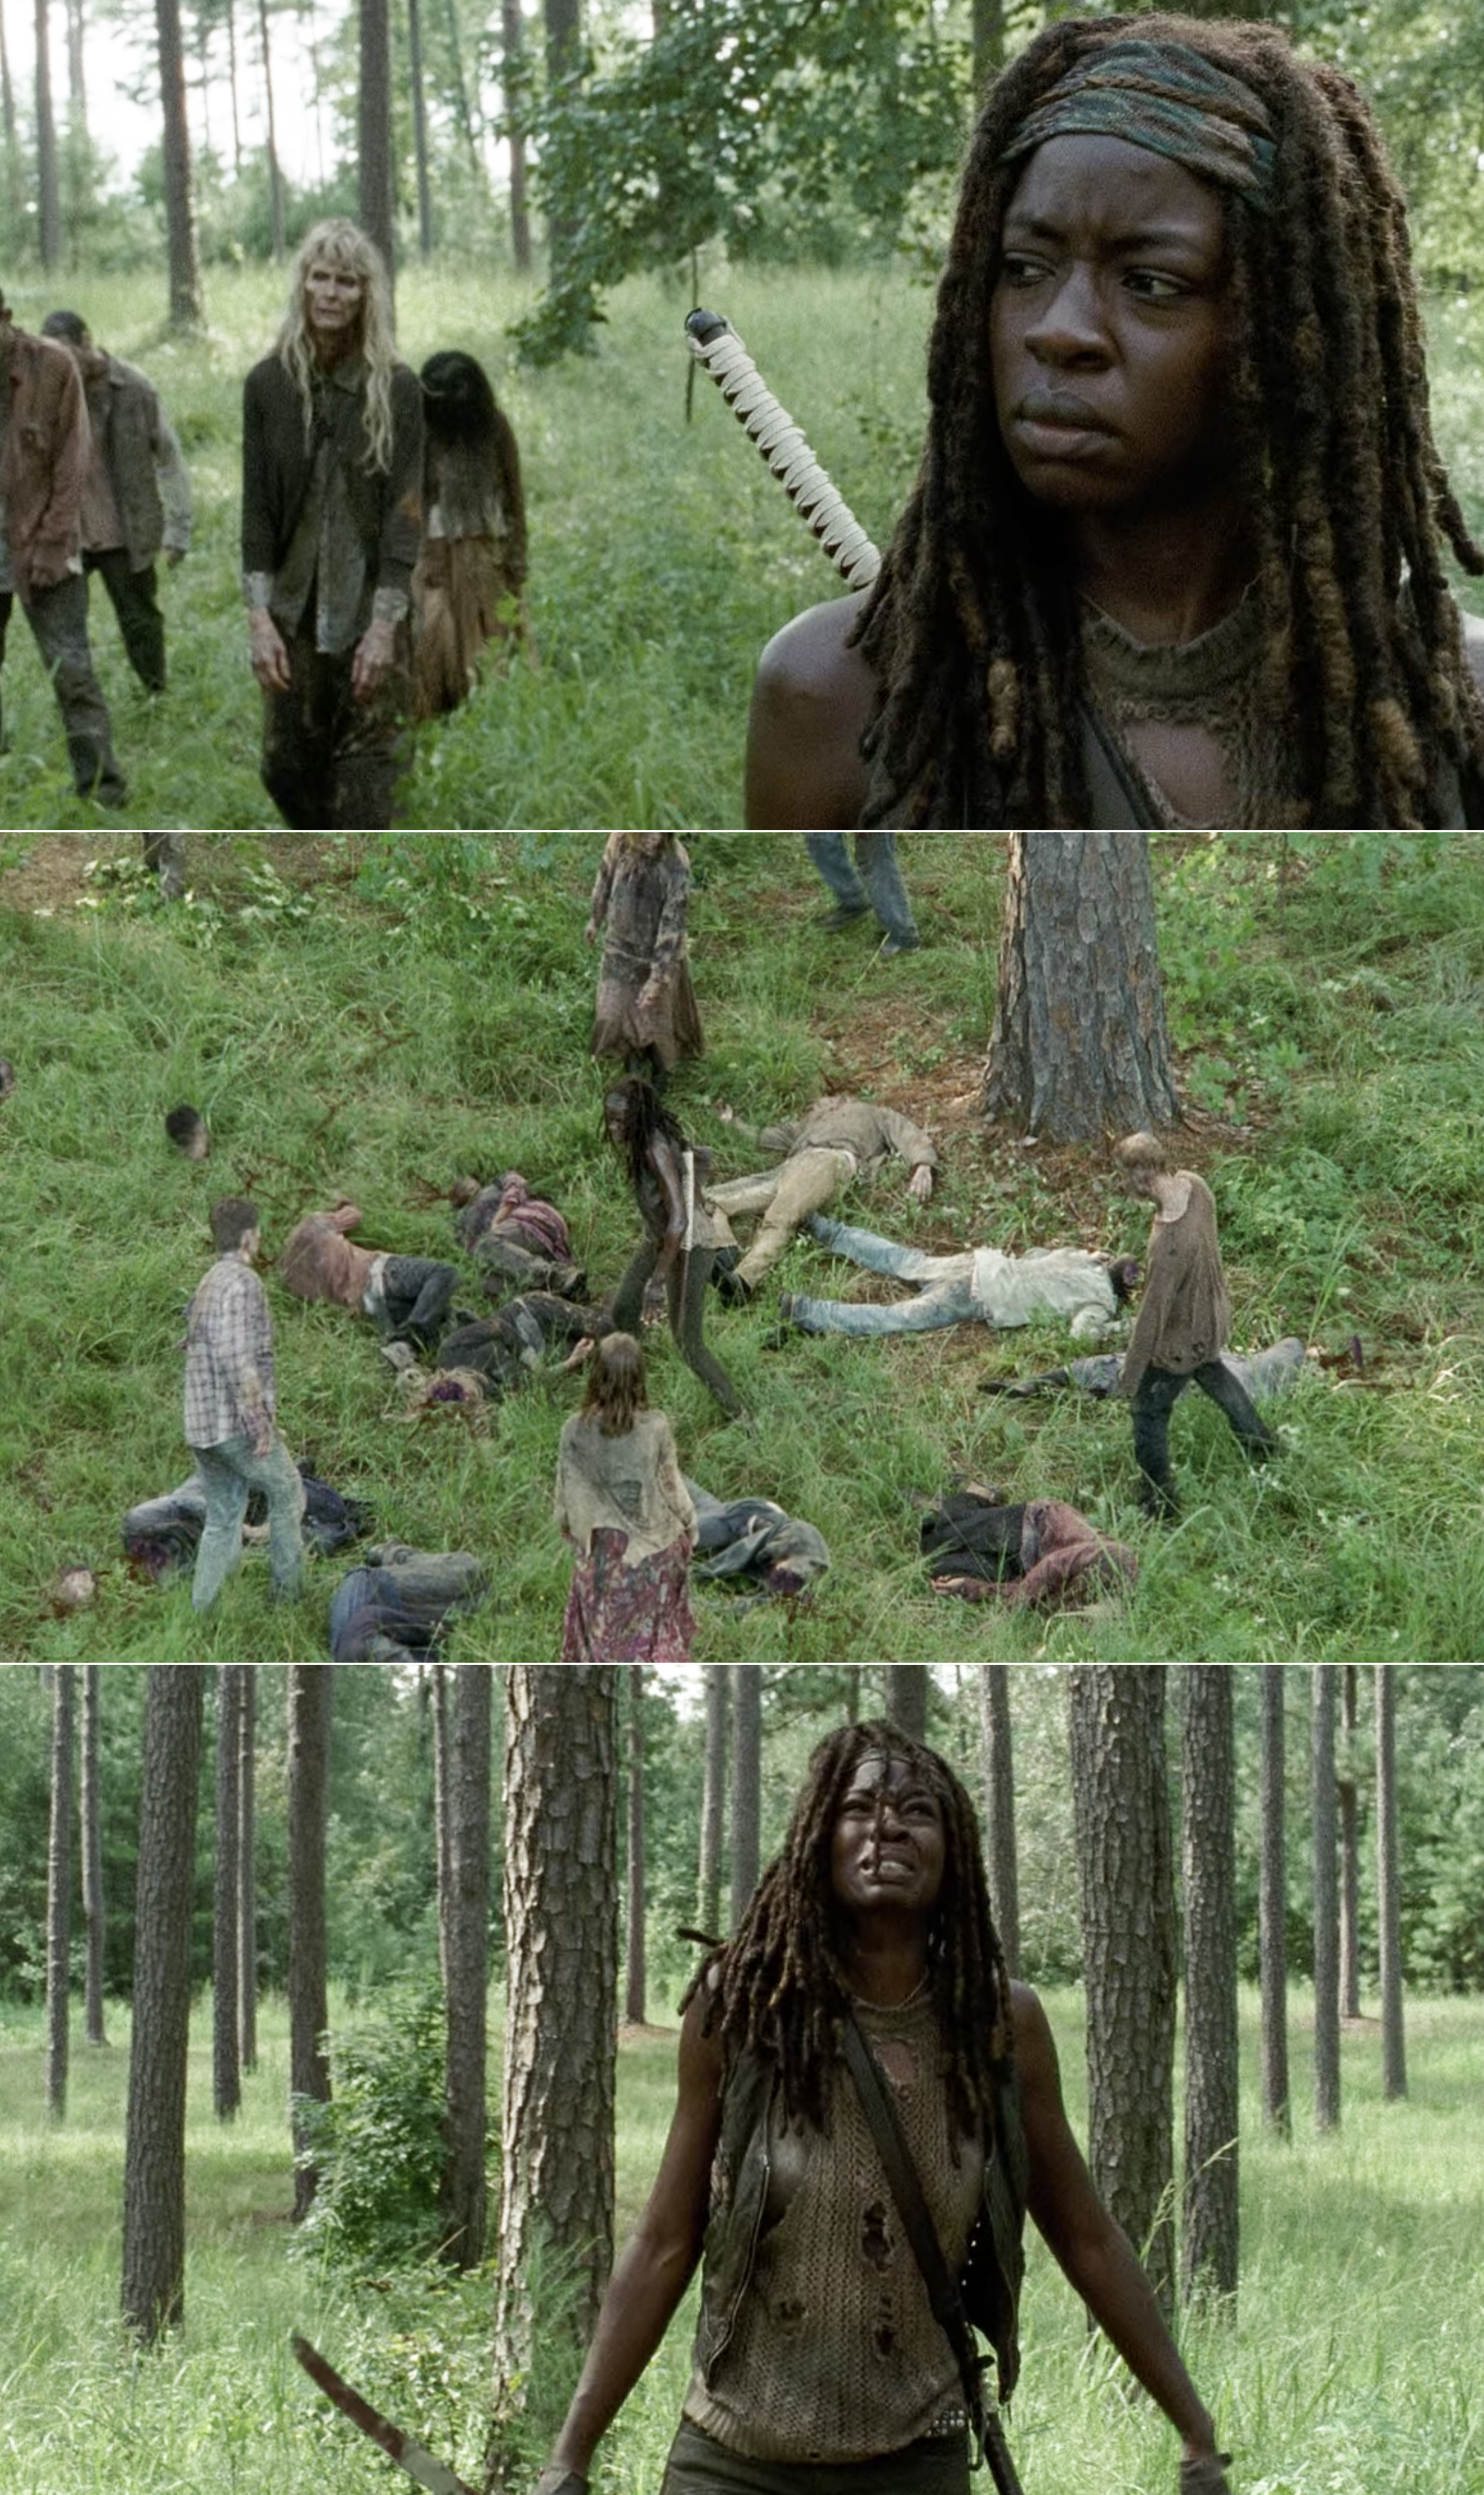 Michonne killing a hoard of walkers and then crying